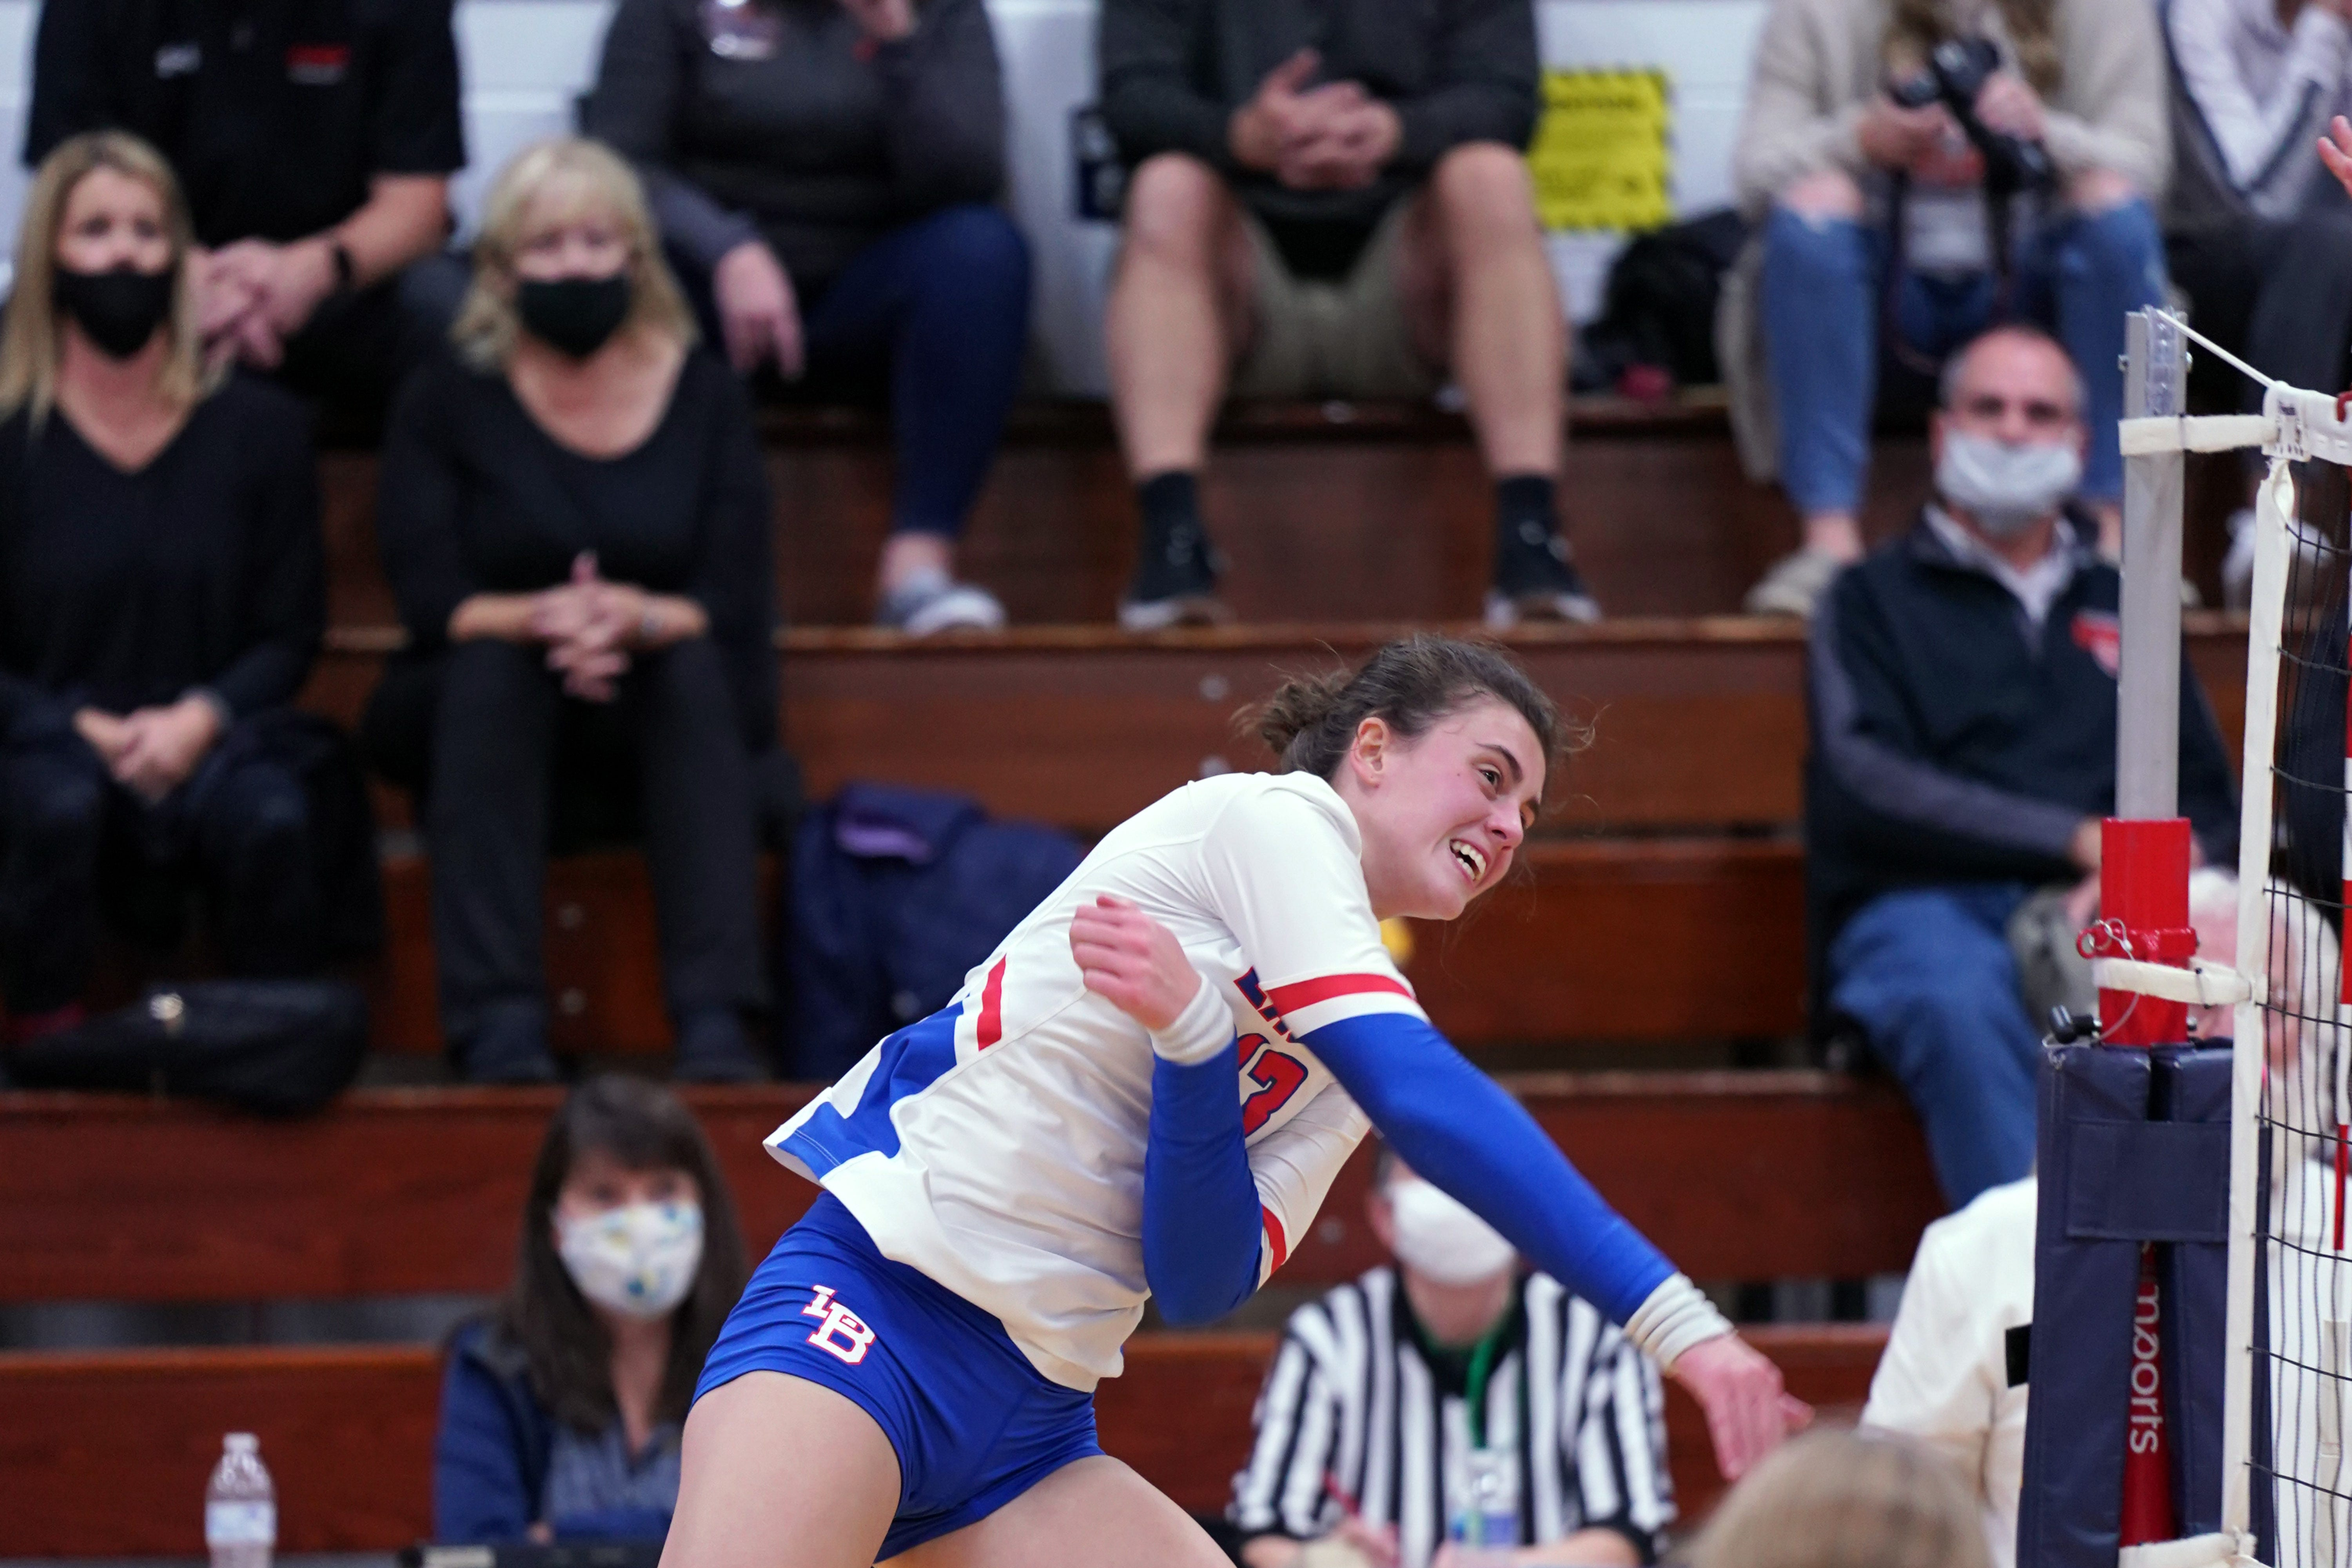 Isabella Granger of Liberty Benton is one of the best volleyball players in the state.